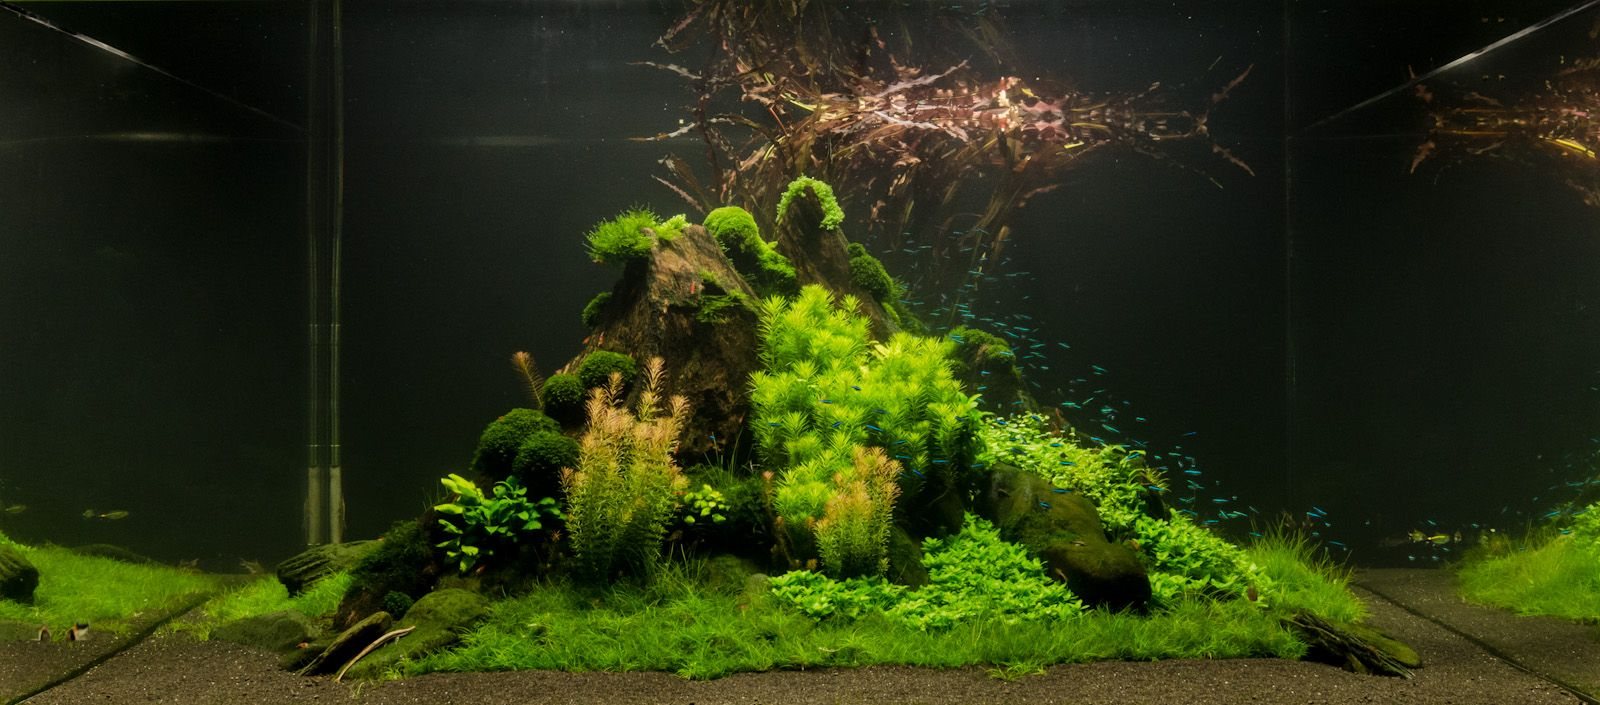 Tropical freshwater aquarium fish uk - James D Arcy